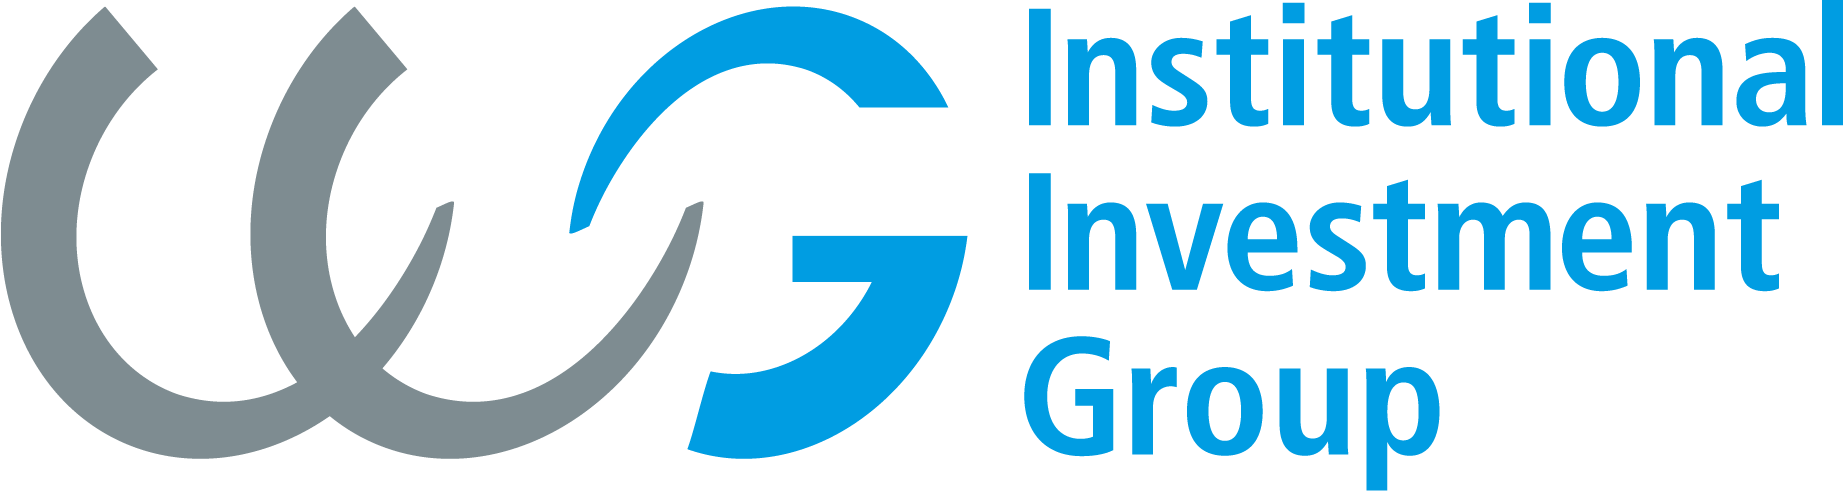 Institutional Investment Group